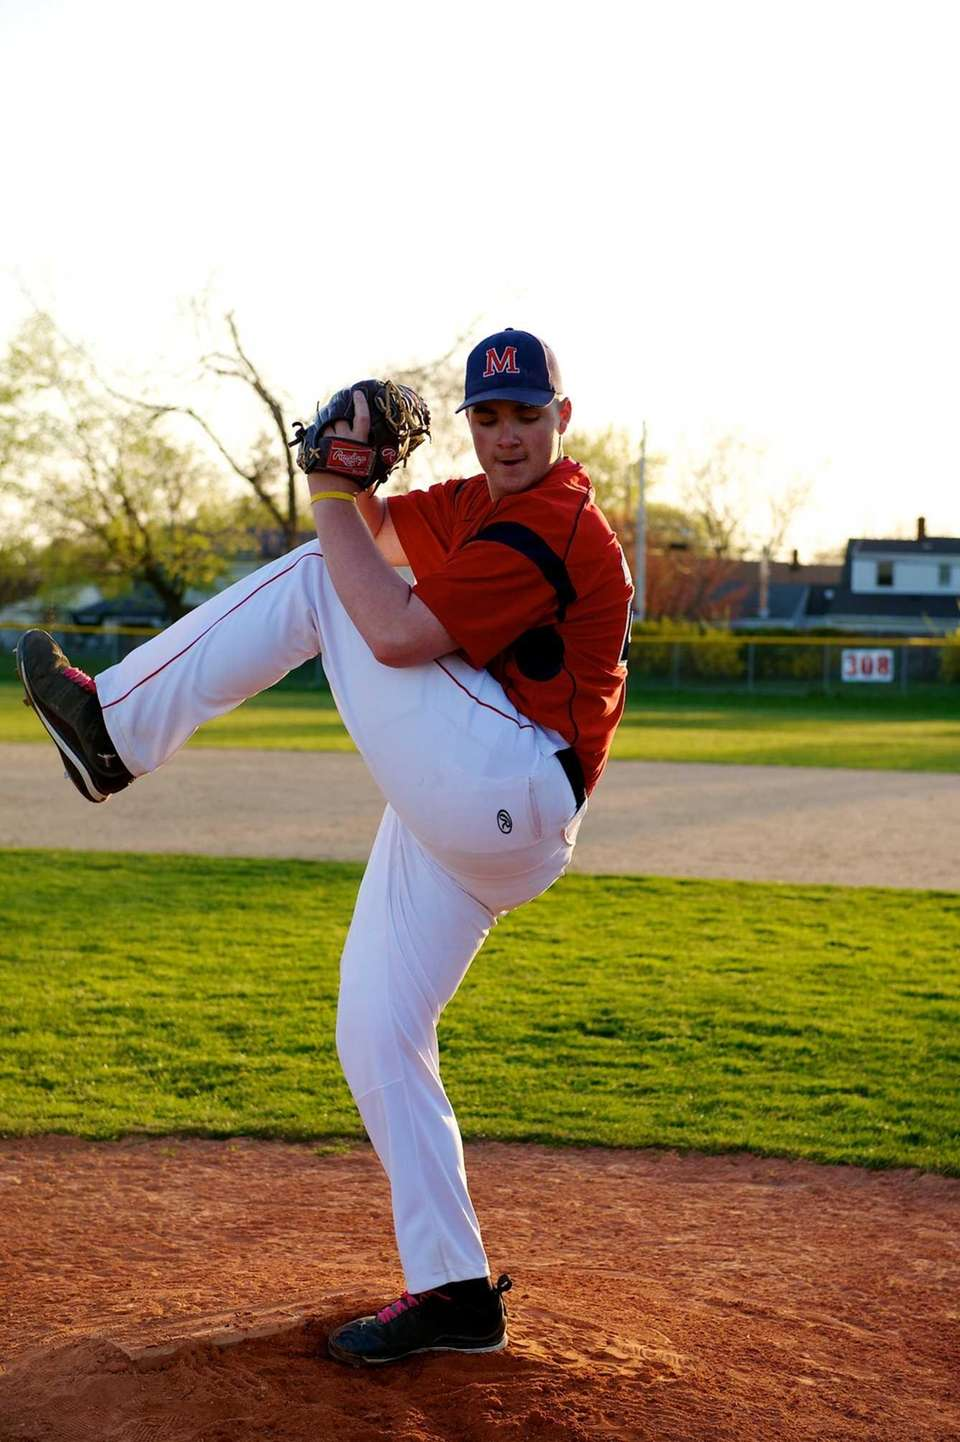 Adam Heidenfelder practices pitching. (April 25, 2013)